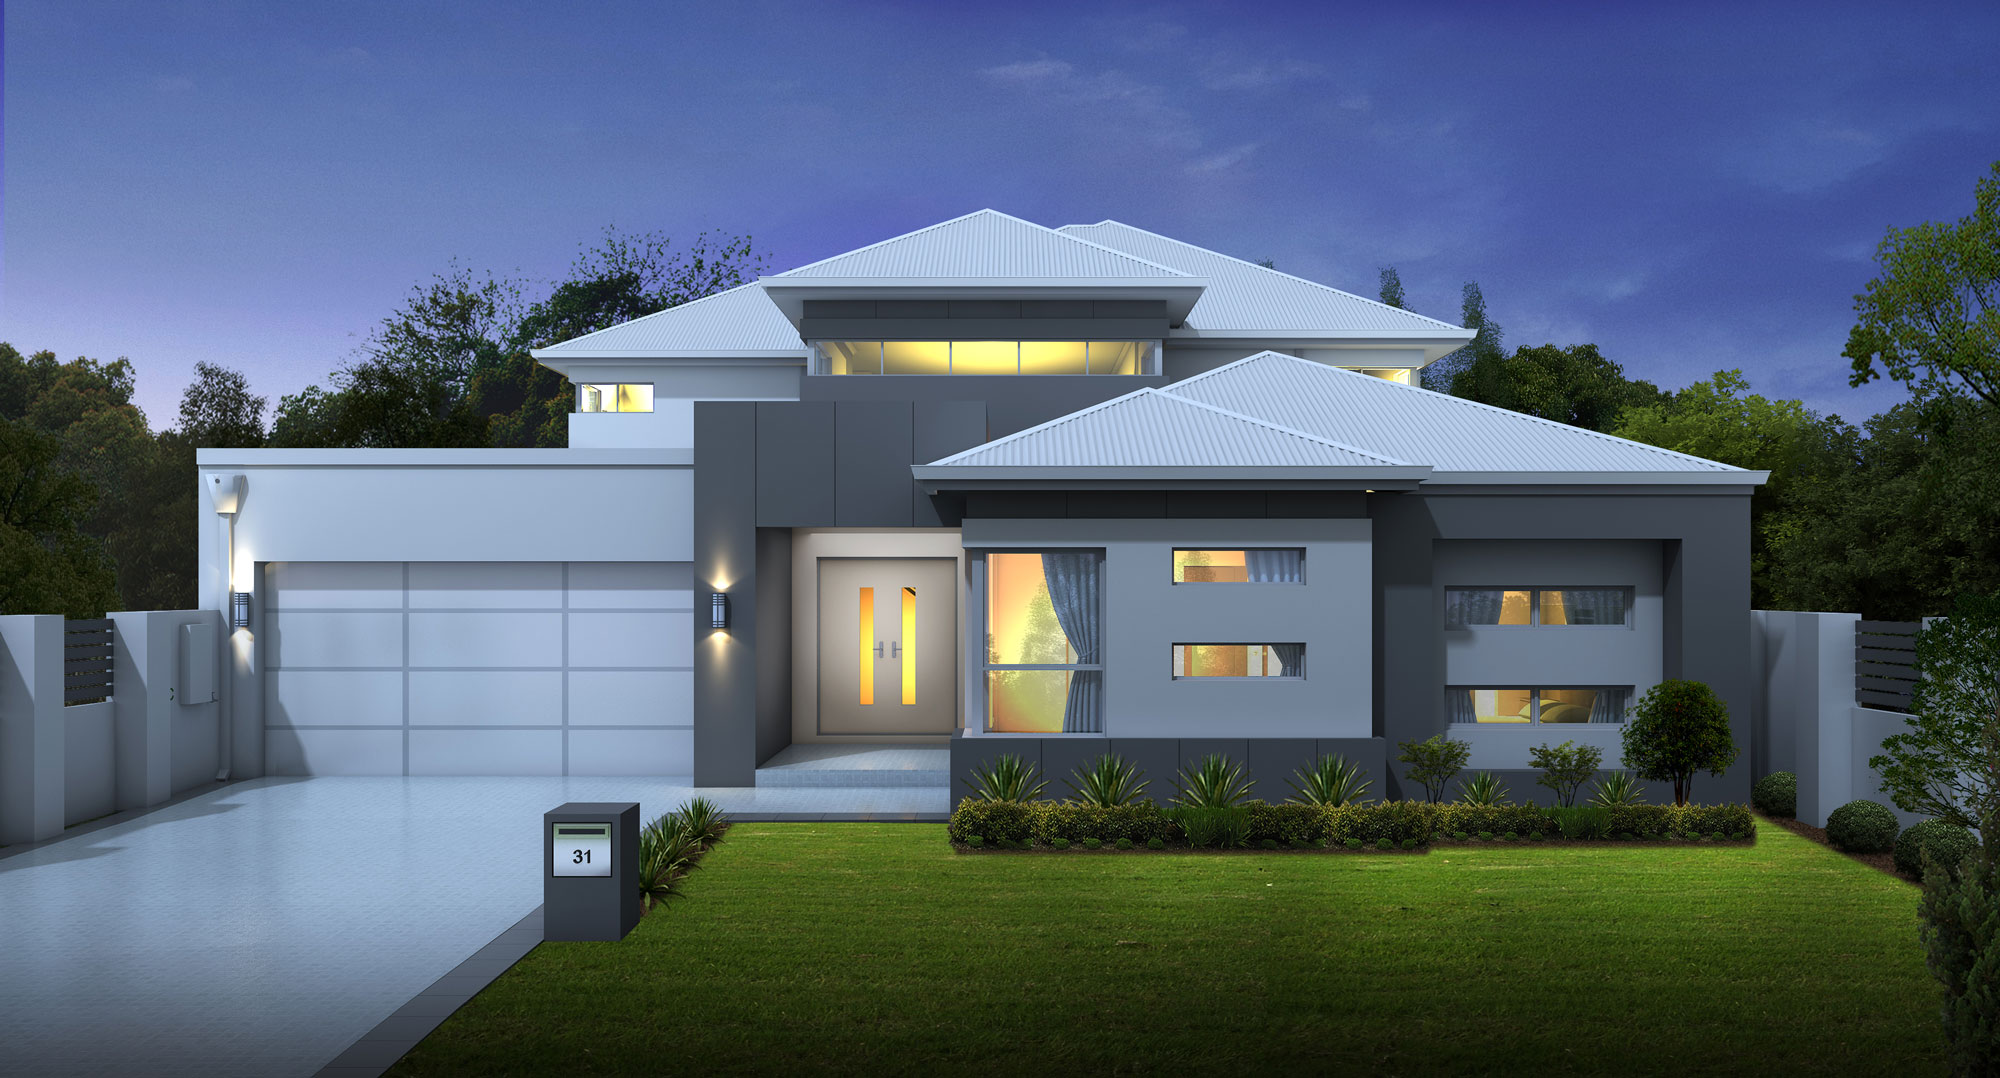 5 Bedroom House In Perth Livingstone Executive Metro Homes